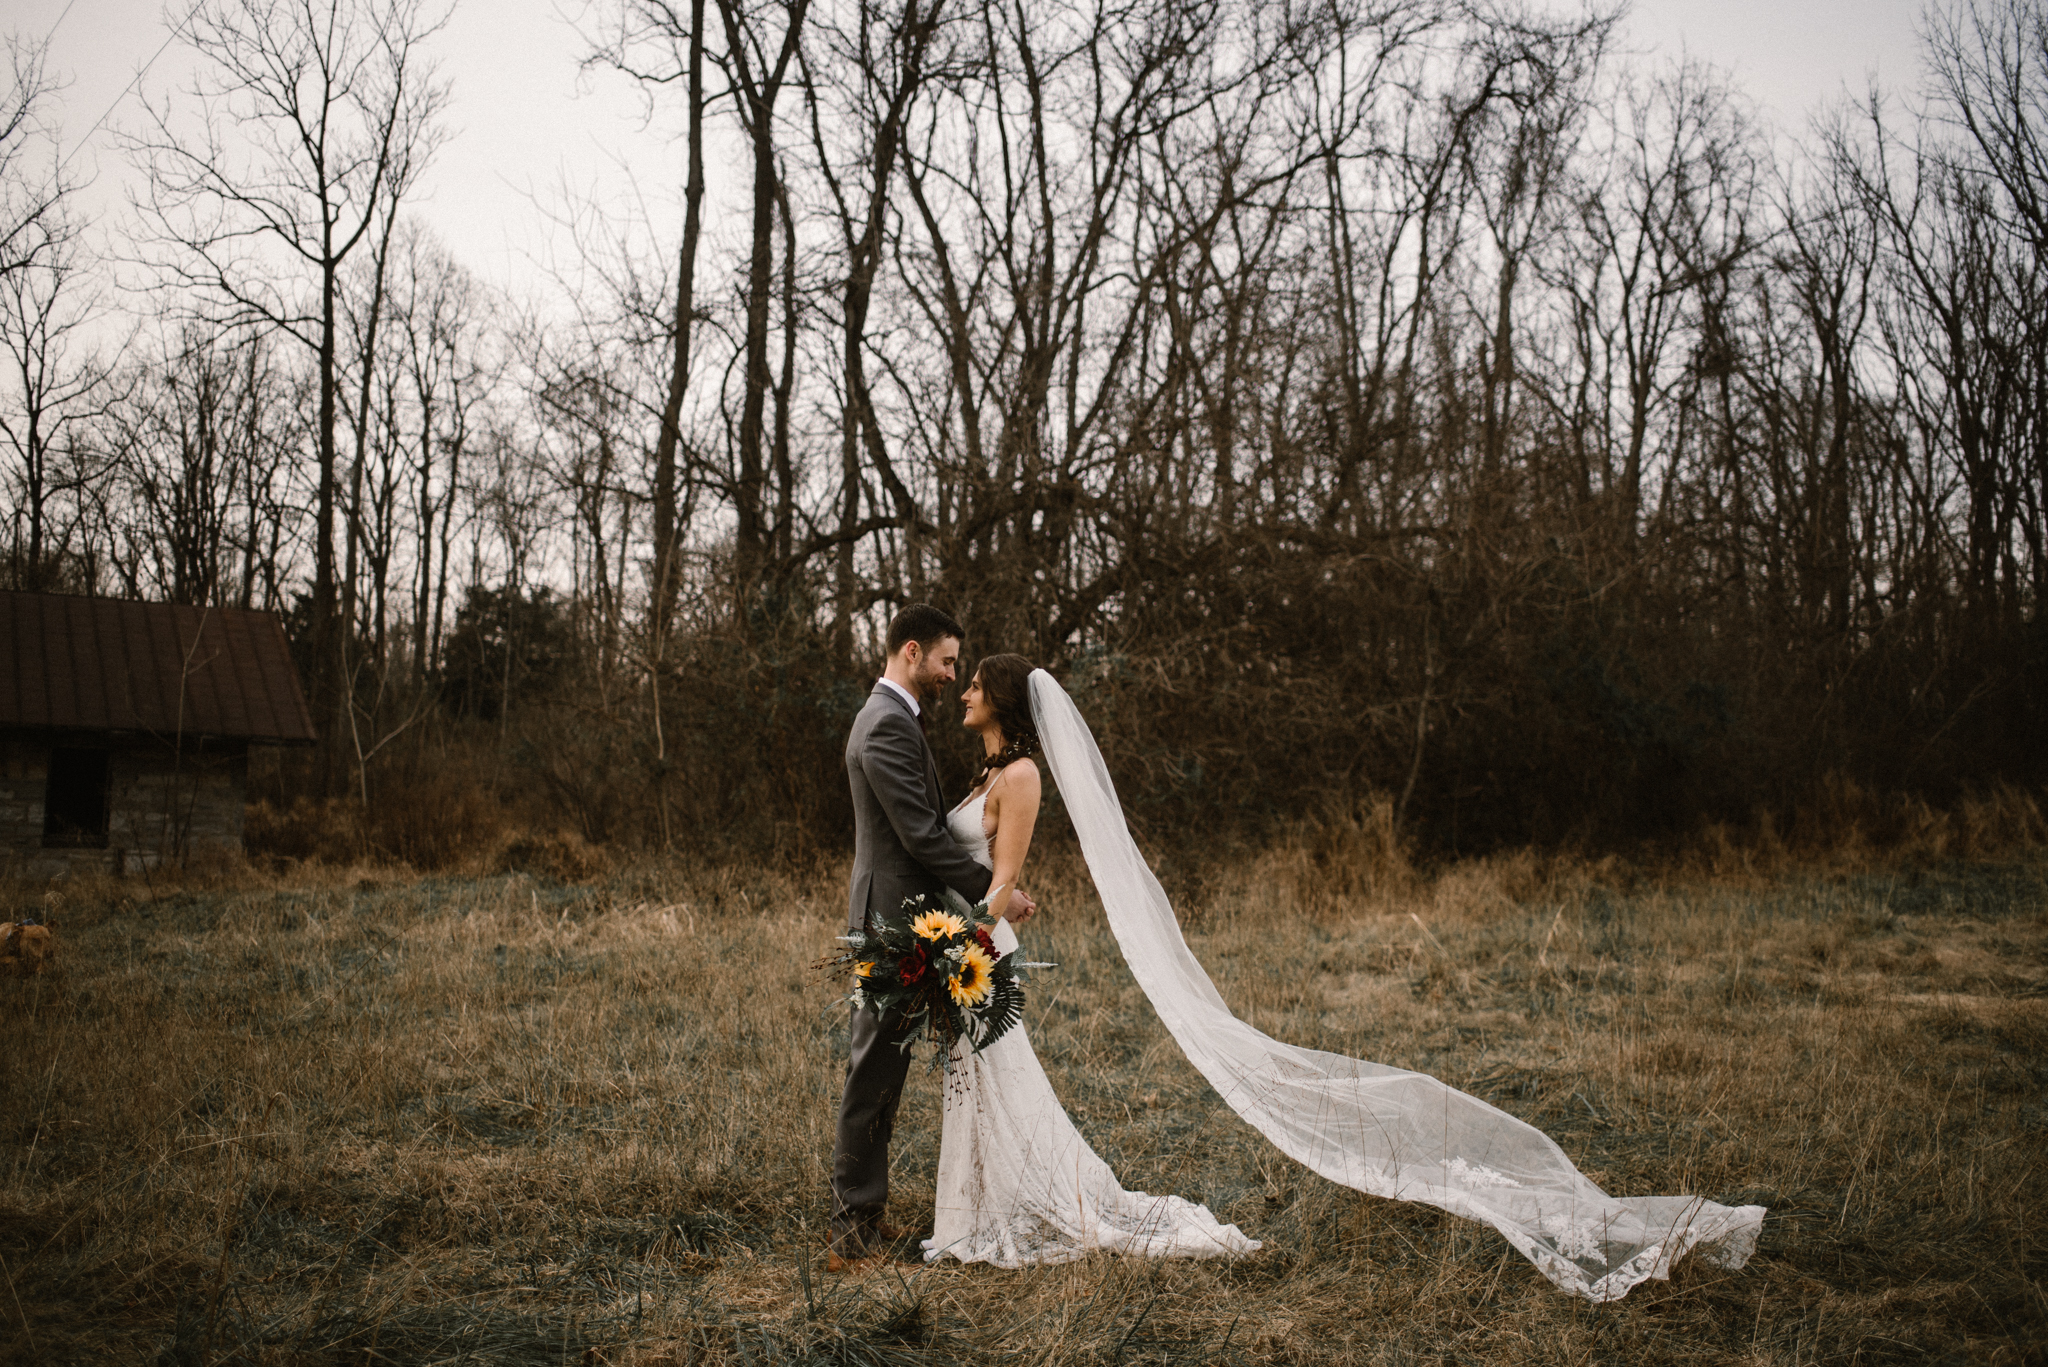 Shenandoah National Park Elopement Wedding Photographer and Planner_43.jpg